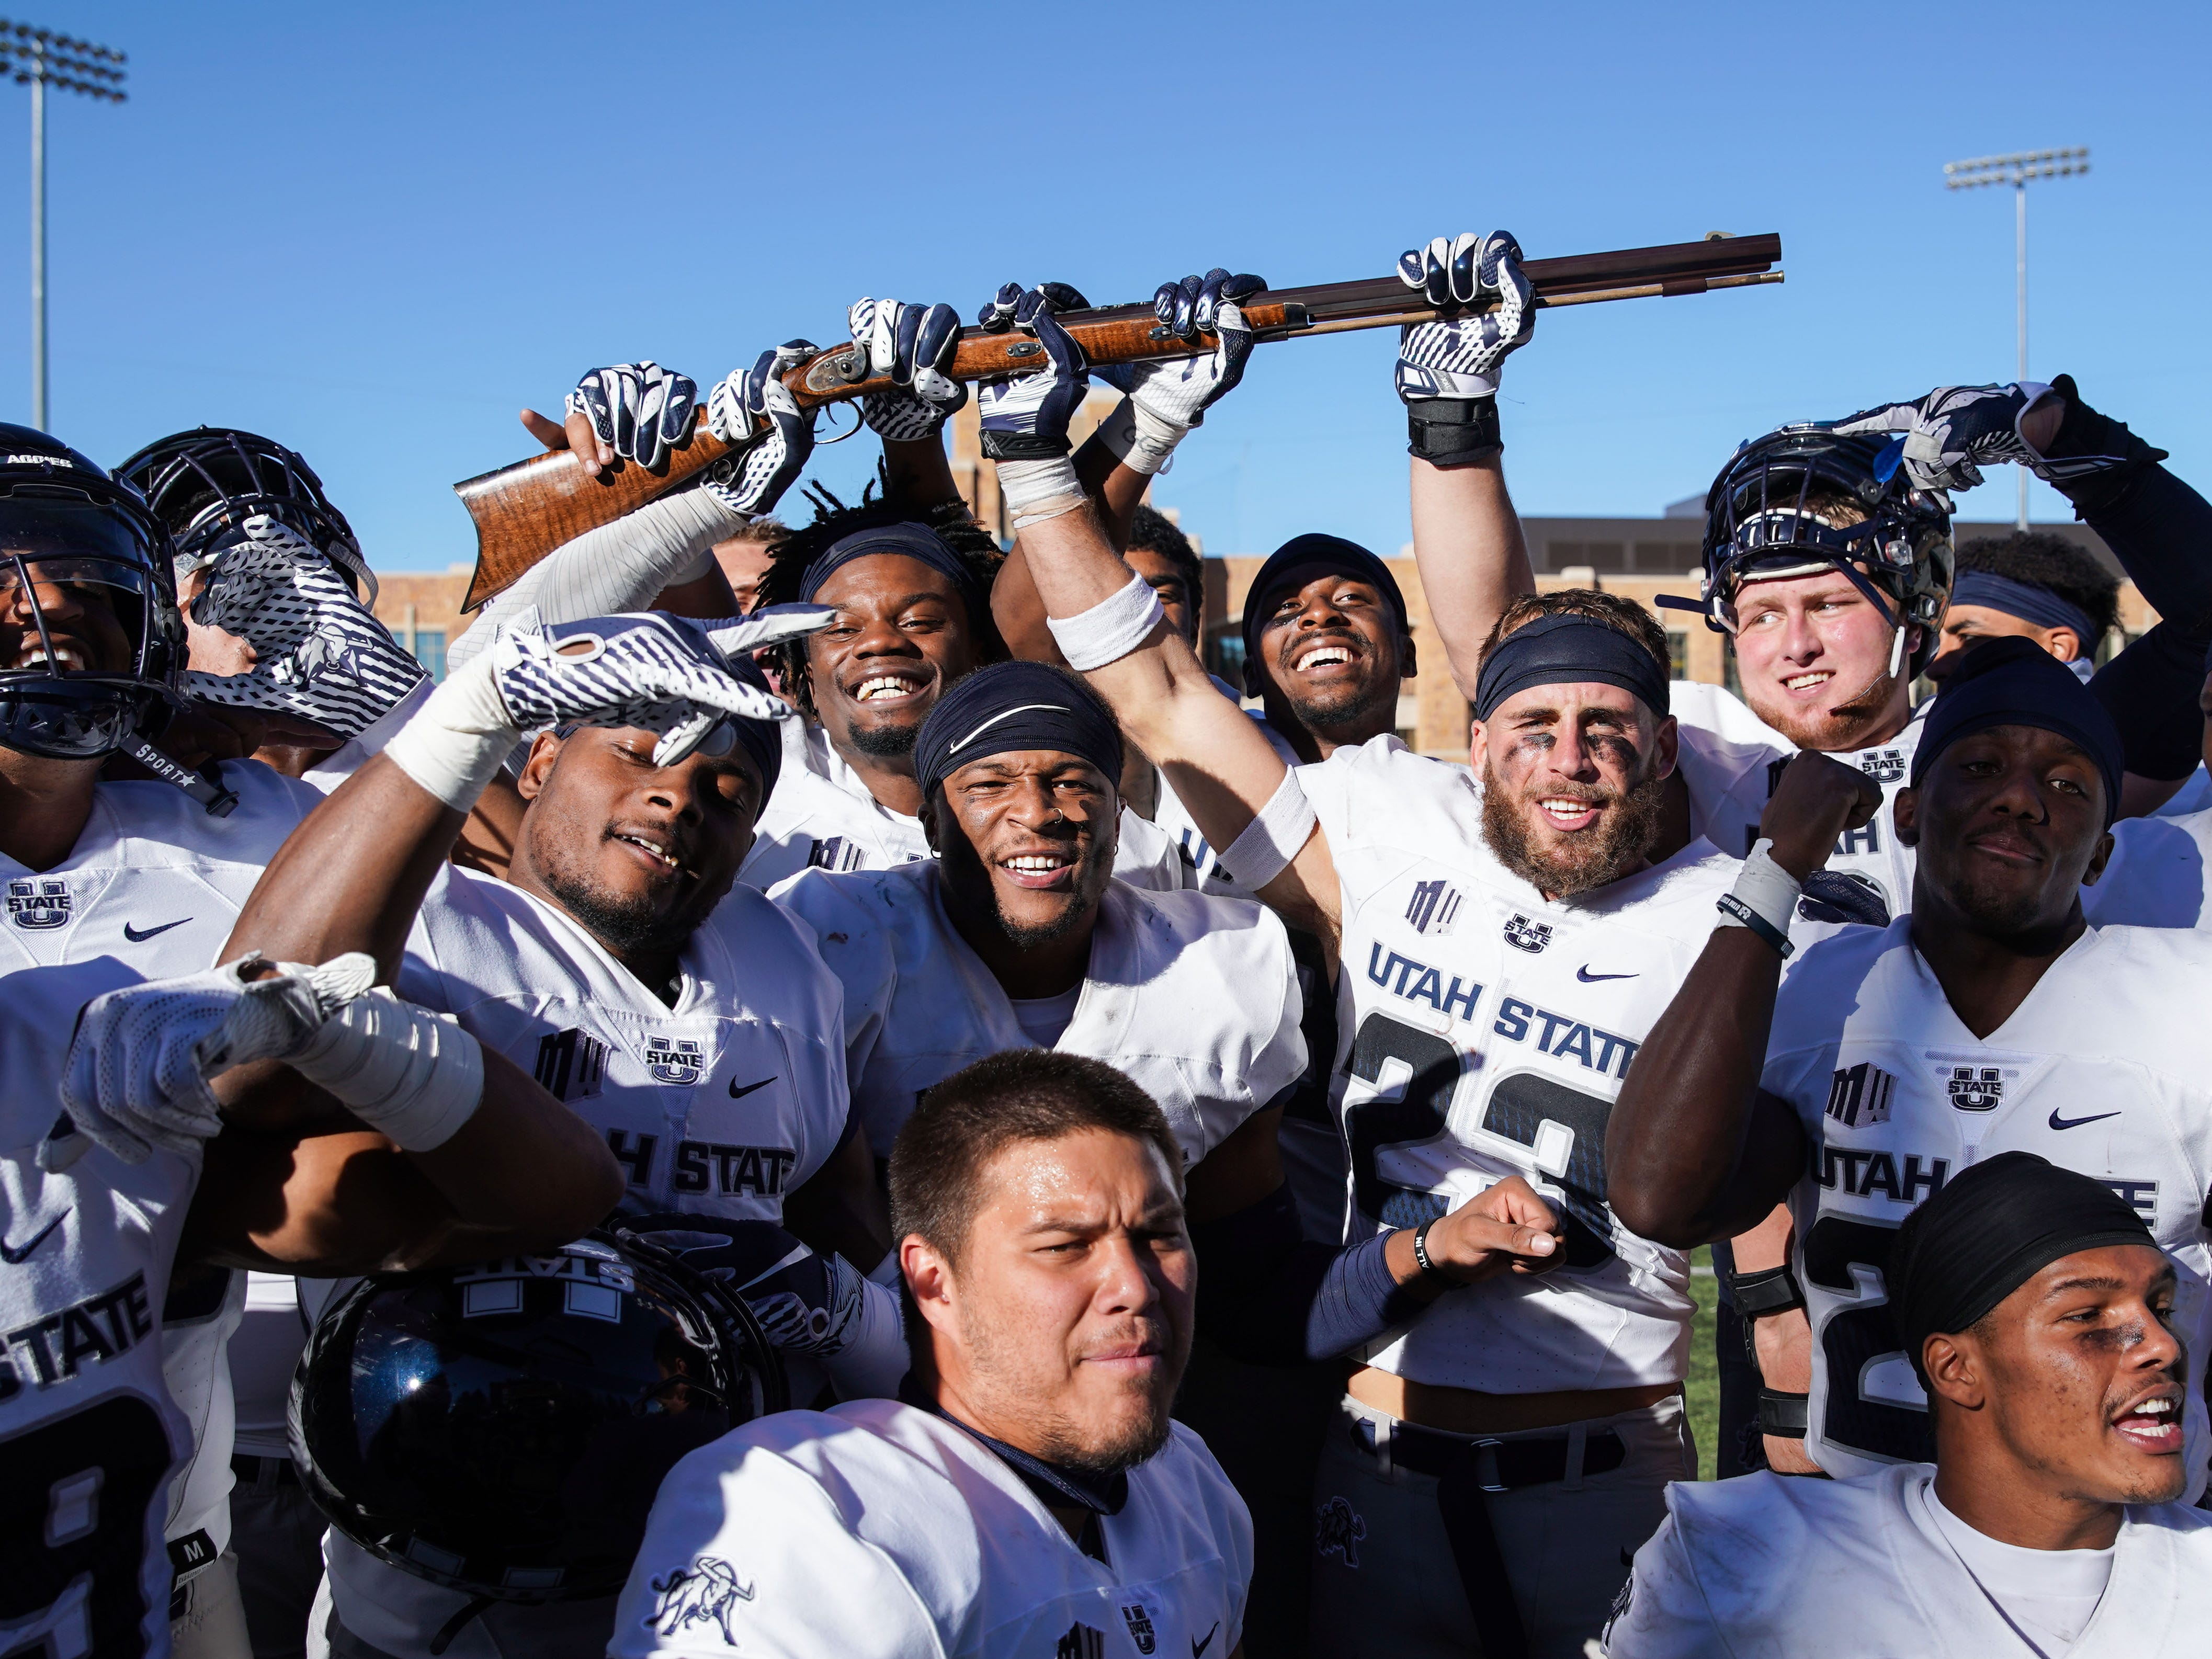 Bridger Rifle: Utah State players hold the Bridger Rifle after a 24-16 win against Wyoming at Jonah Field War Memorial Stadium on Oct. 20.